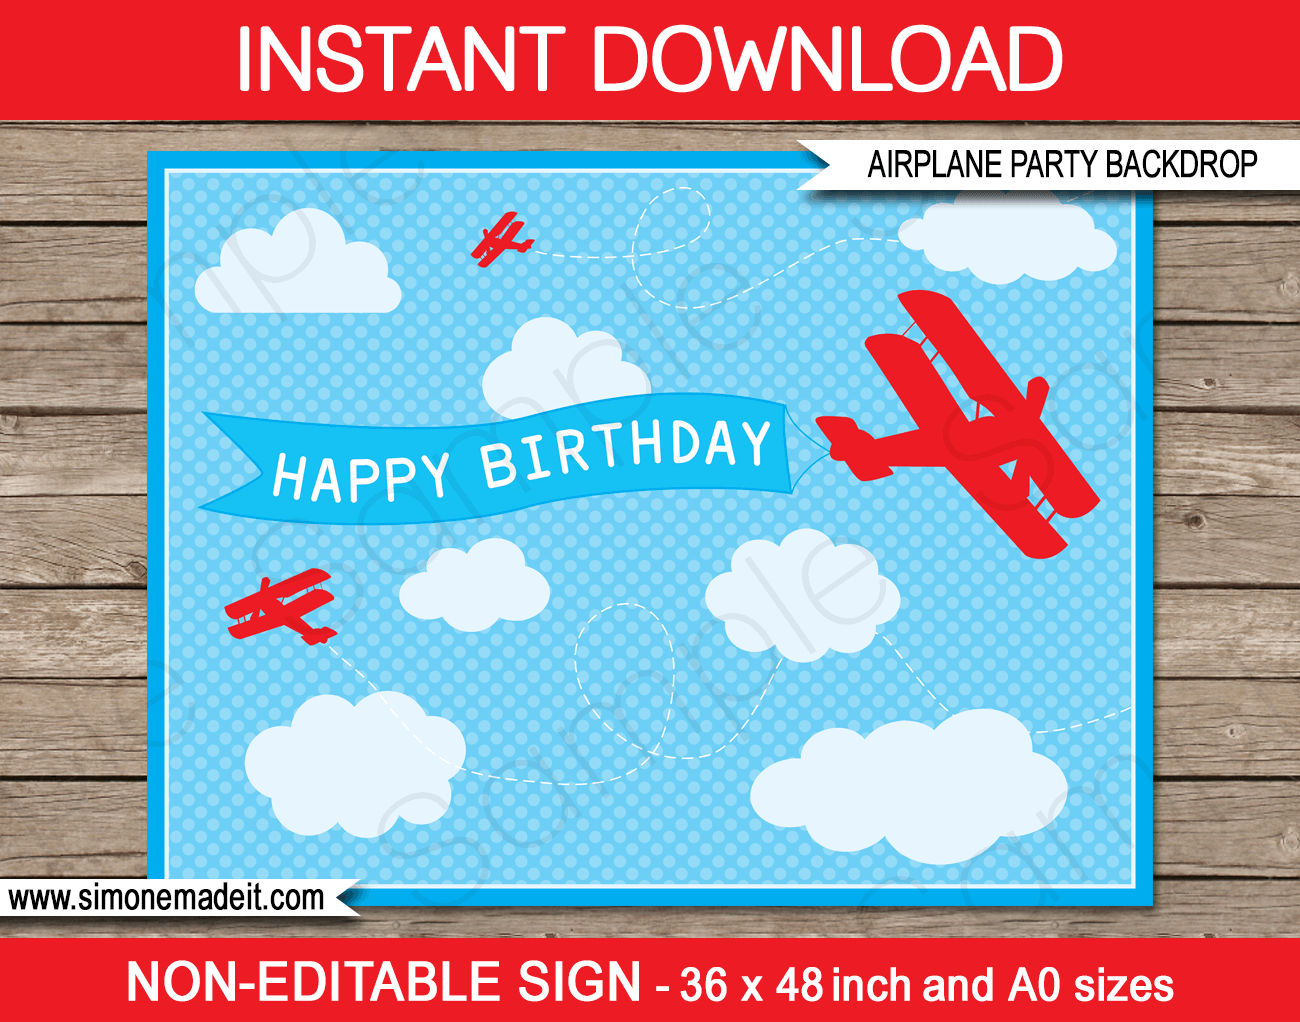 Printable airplane birthday party backdrop sign party decorations diy template instant download 4 50